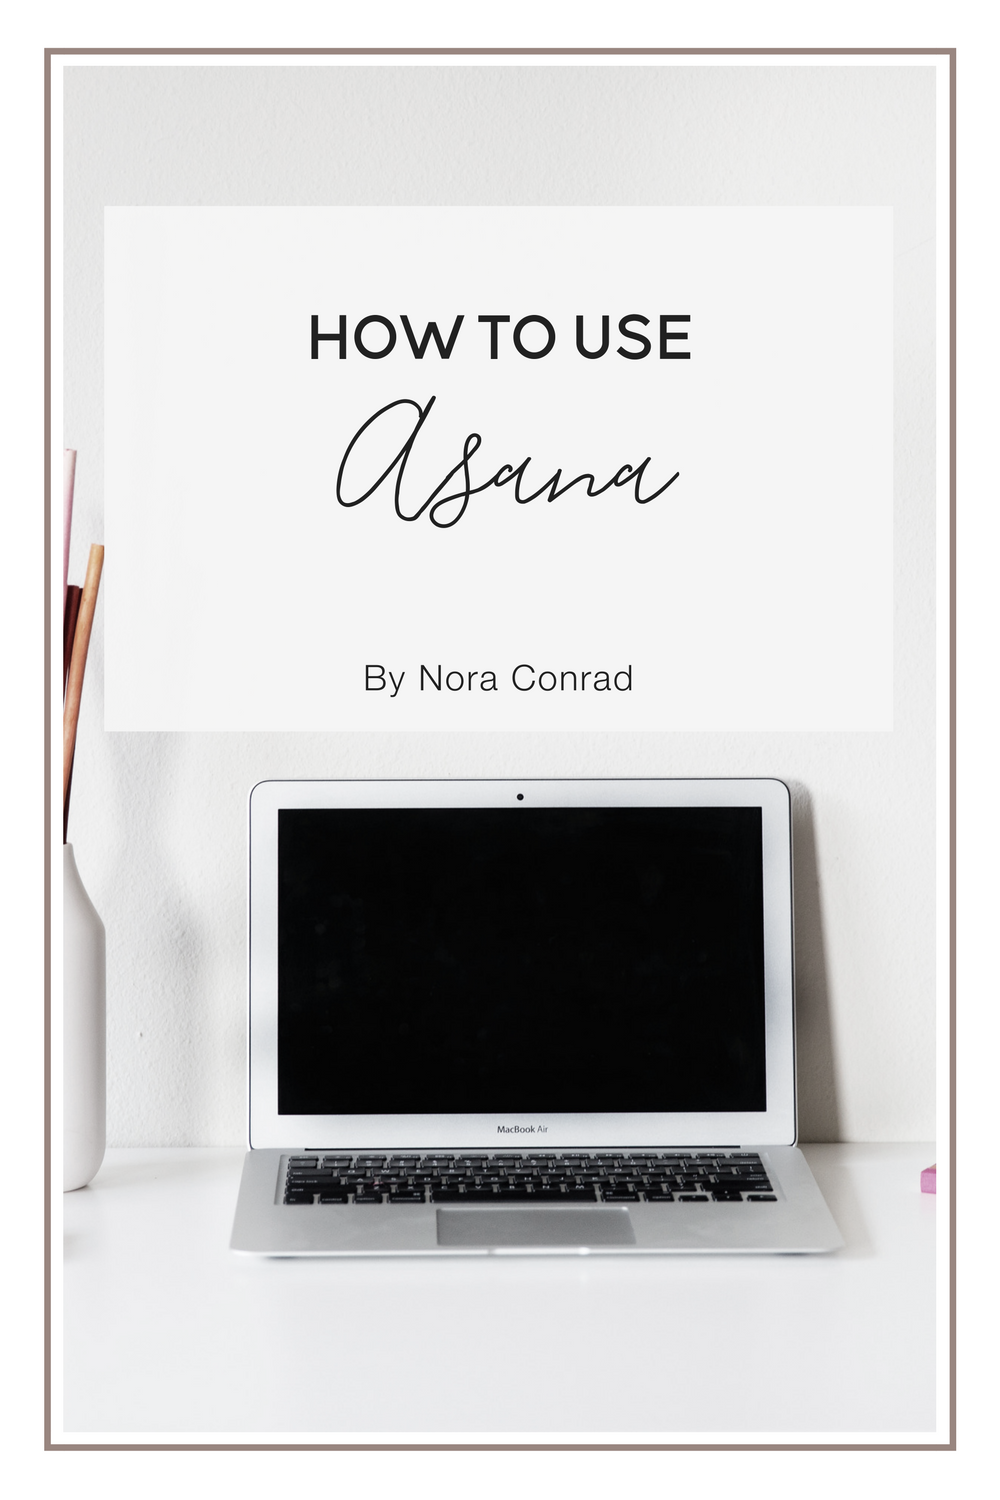 How to use Asana for your own projects, team projects or planning. Step by step guide and tips.